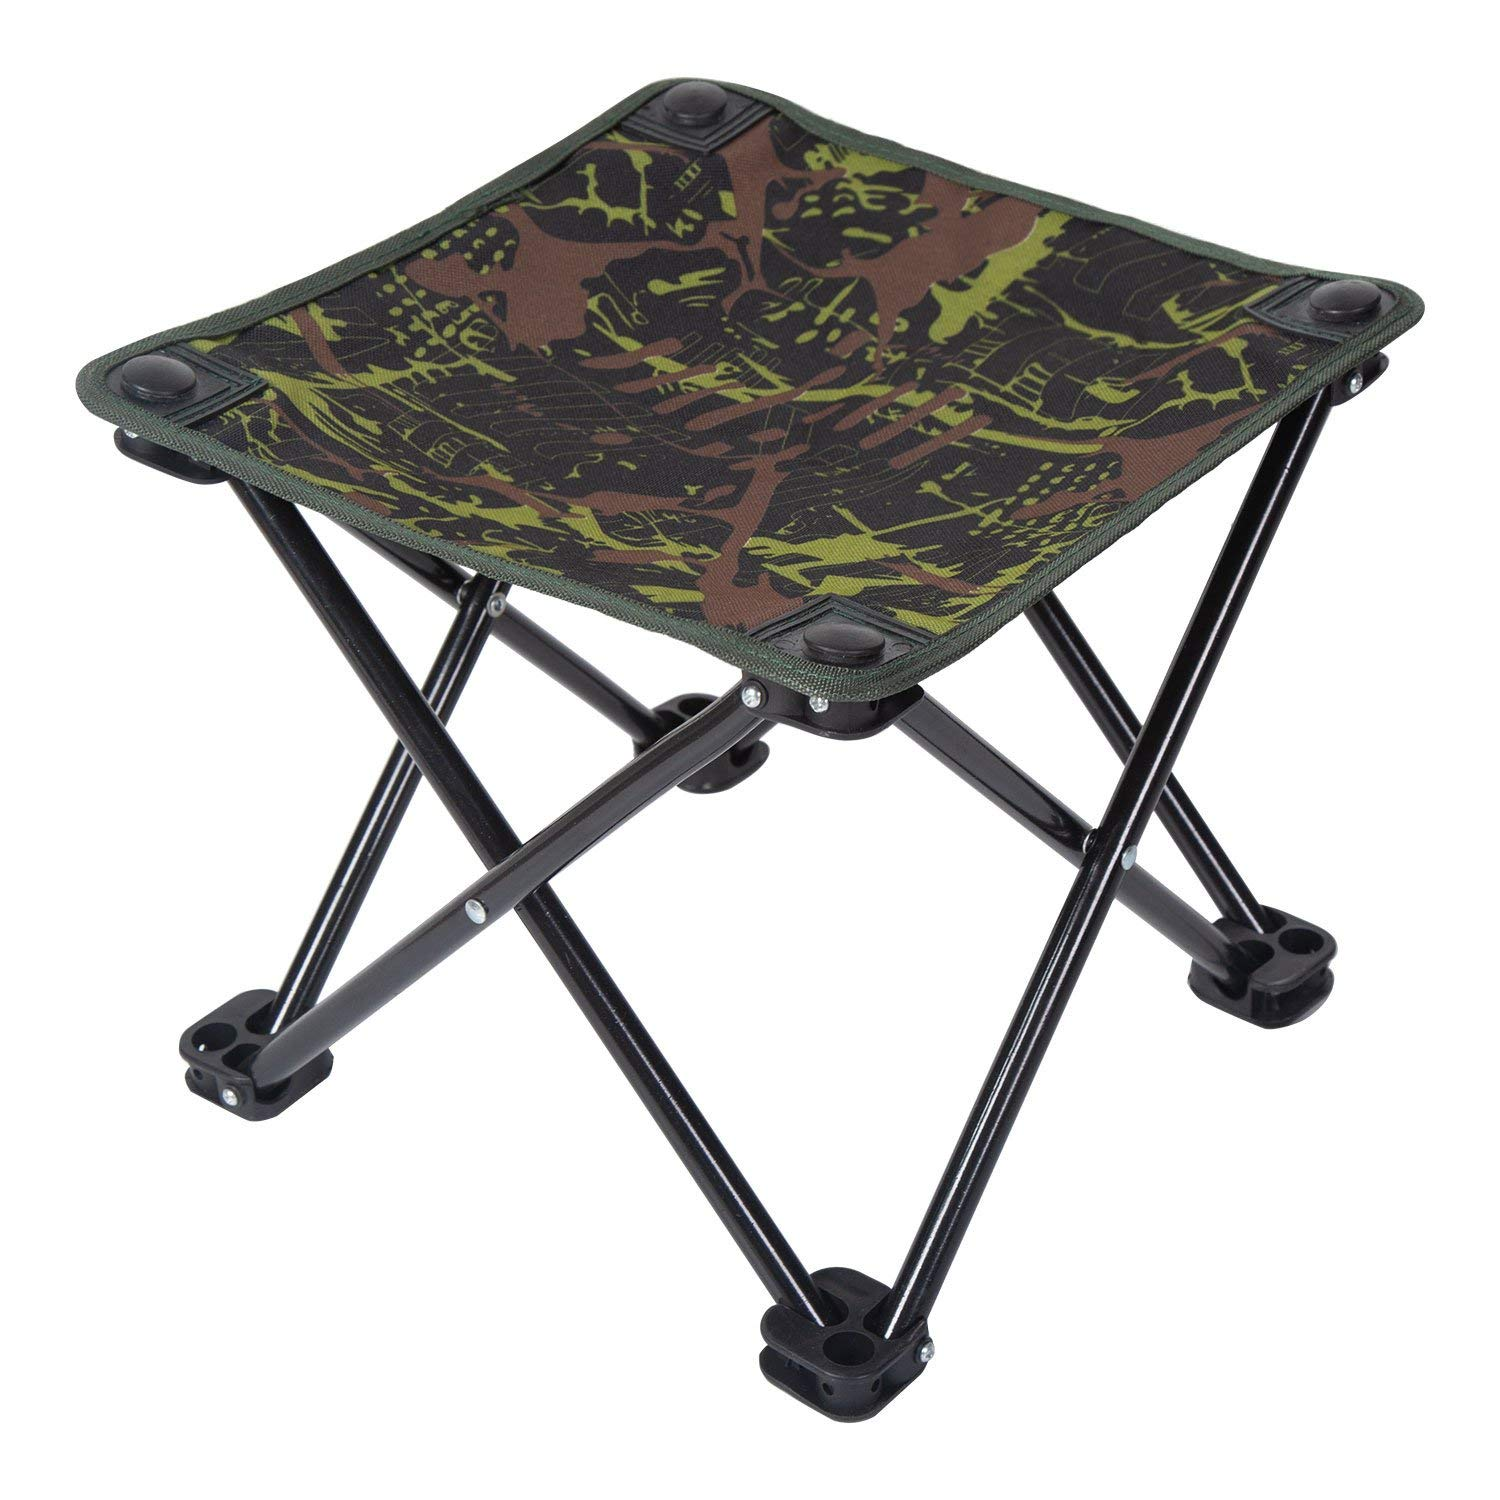 Ultralight Camping Chair, Pantete Collapsible Folding Stool Portable for Travel/Hiking/Gardening/Fishing/Beach/Camping, Mini Outdoor Slacker Chair with Carrier Strap Bag, 12.4''x12.4''x11'' Camouflage